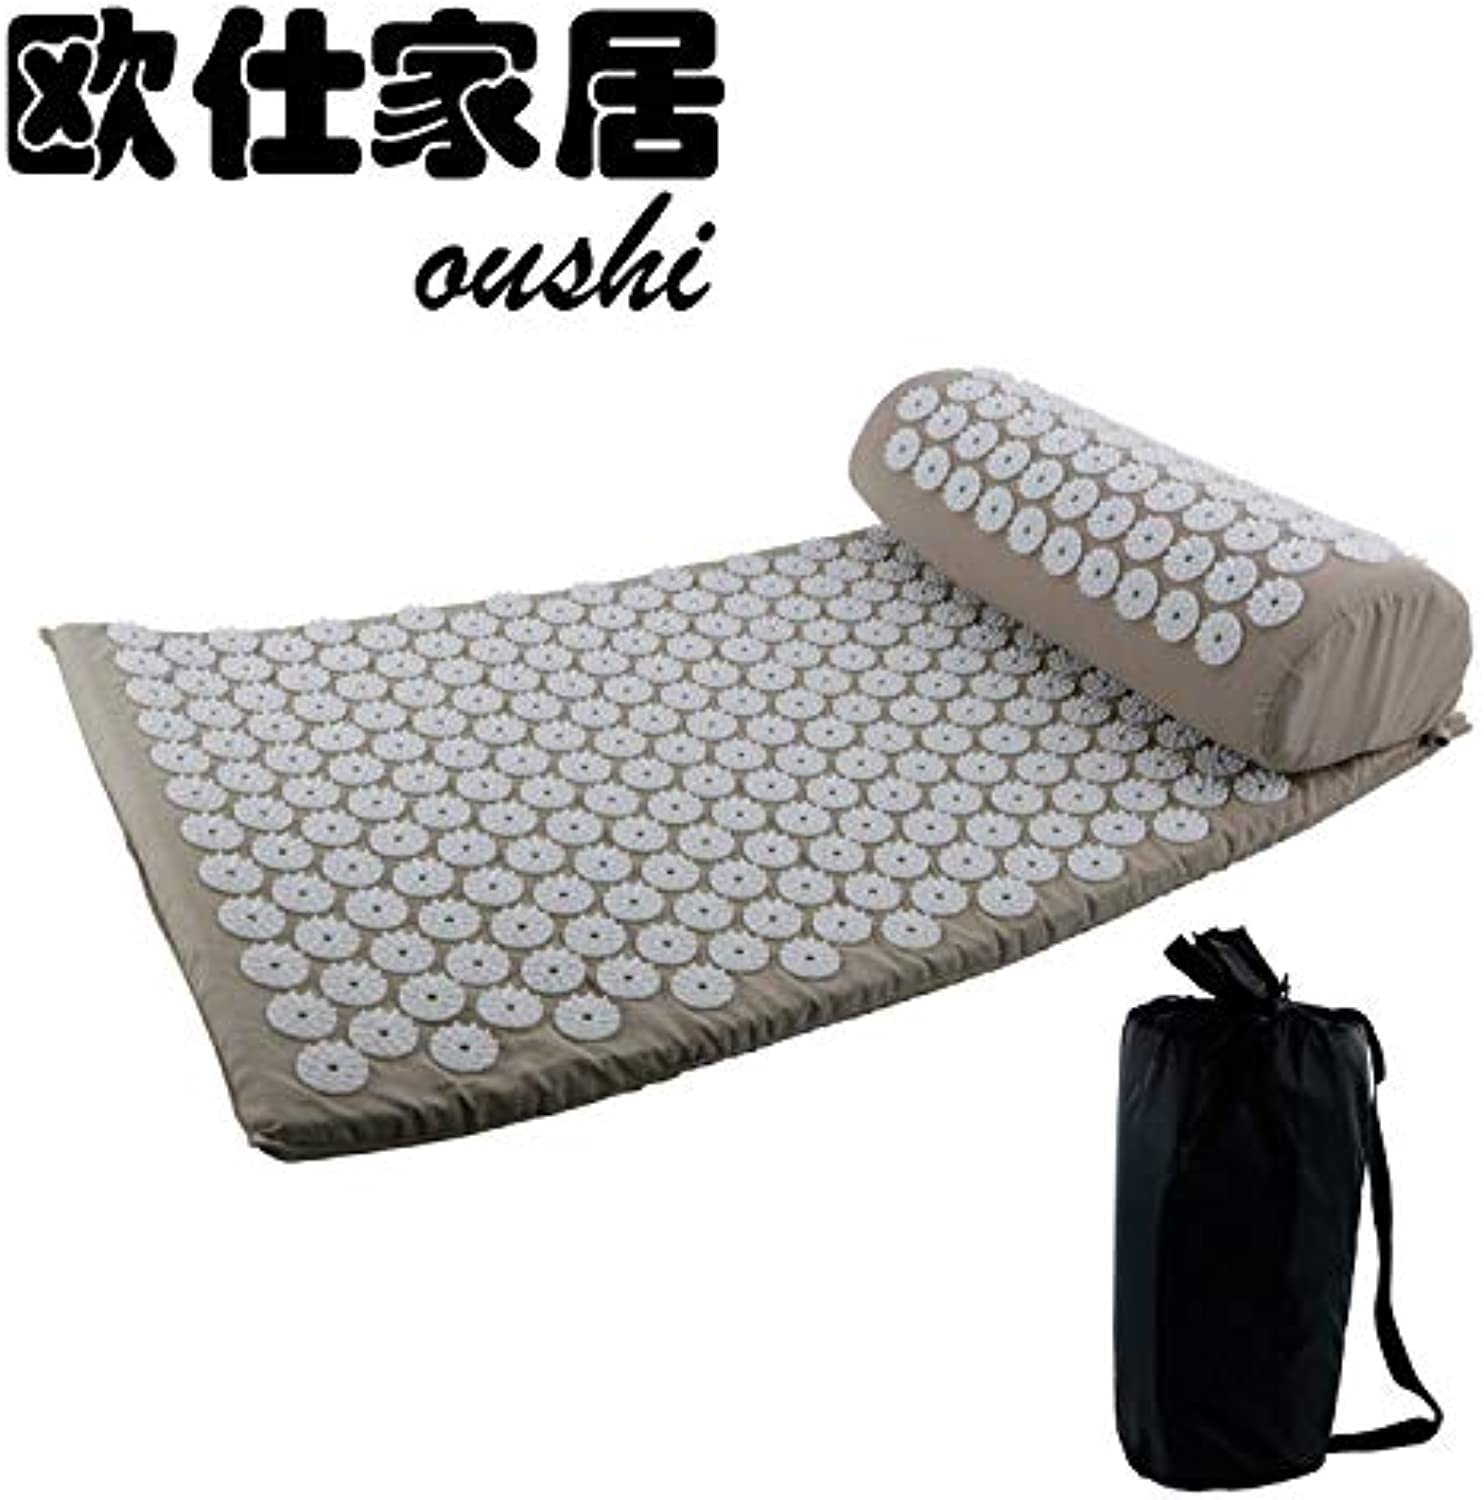 Yunnasi582 Acupuncture Massage Coussin Yoga Coussin Massage Acupuncture Massage Acupuncture Coussin Musculaire Alibaba